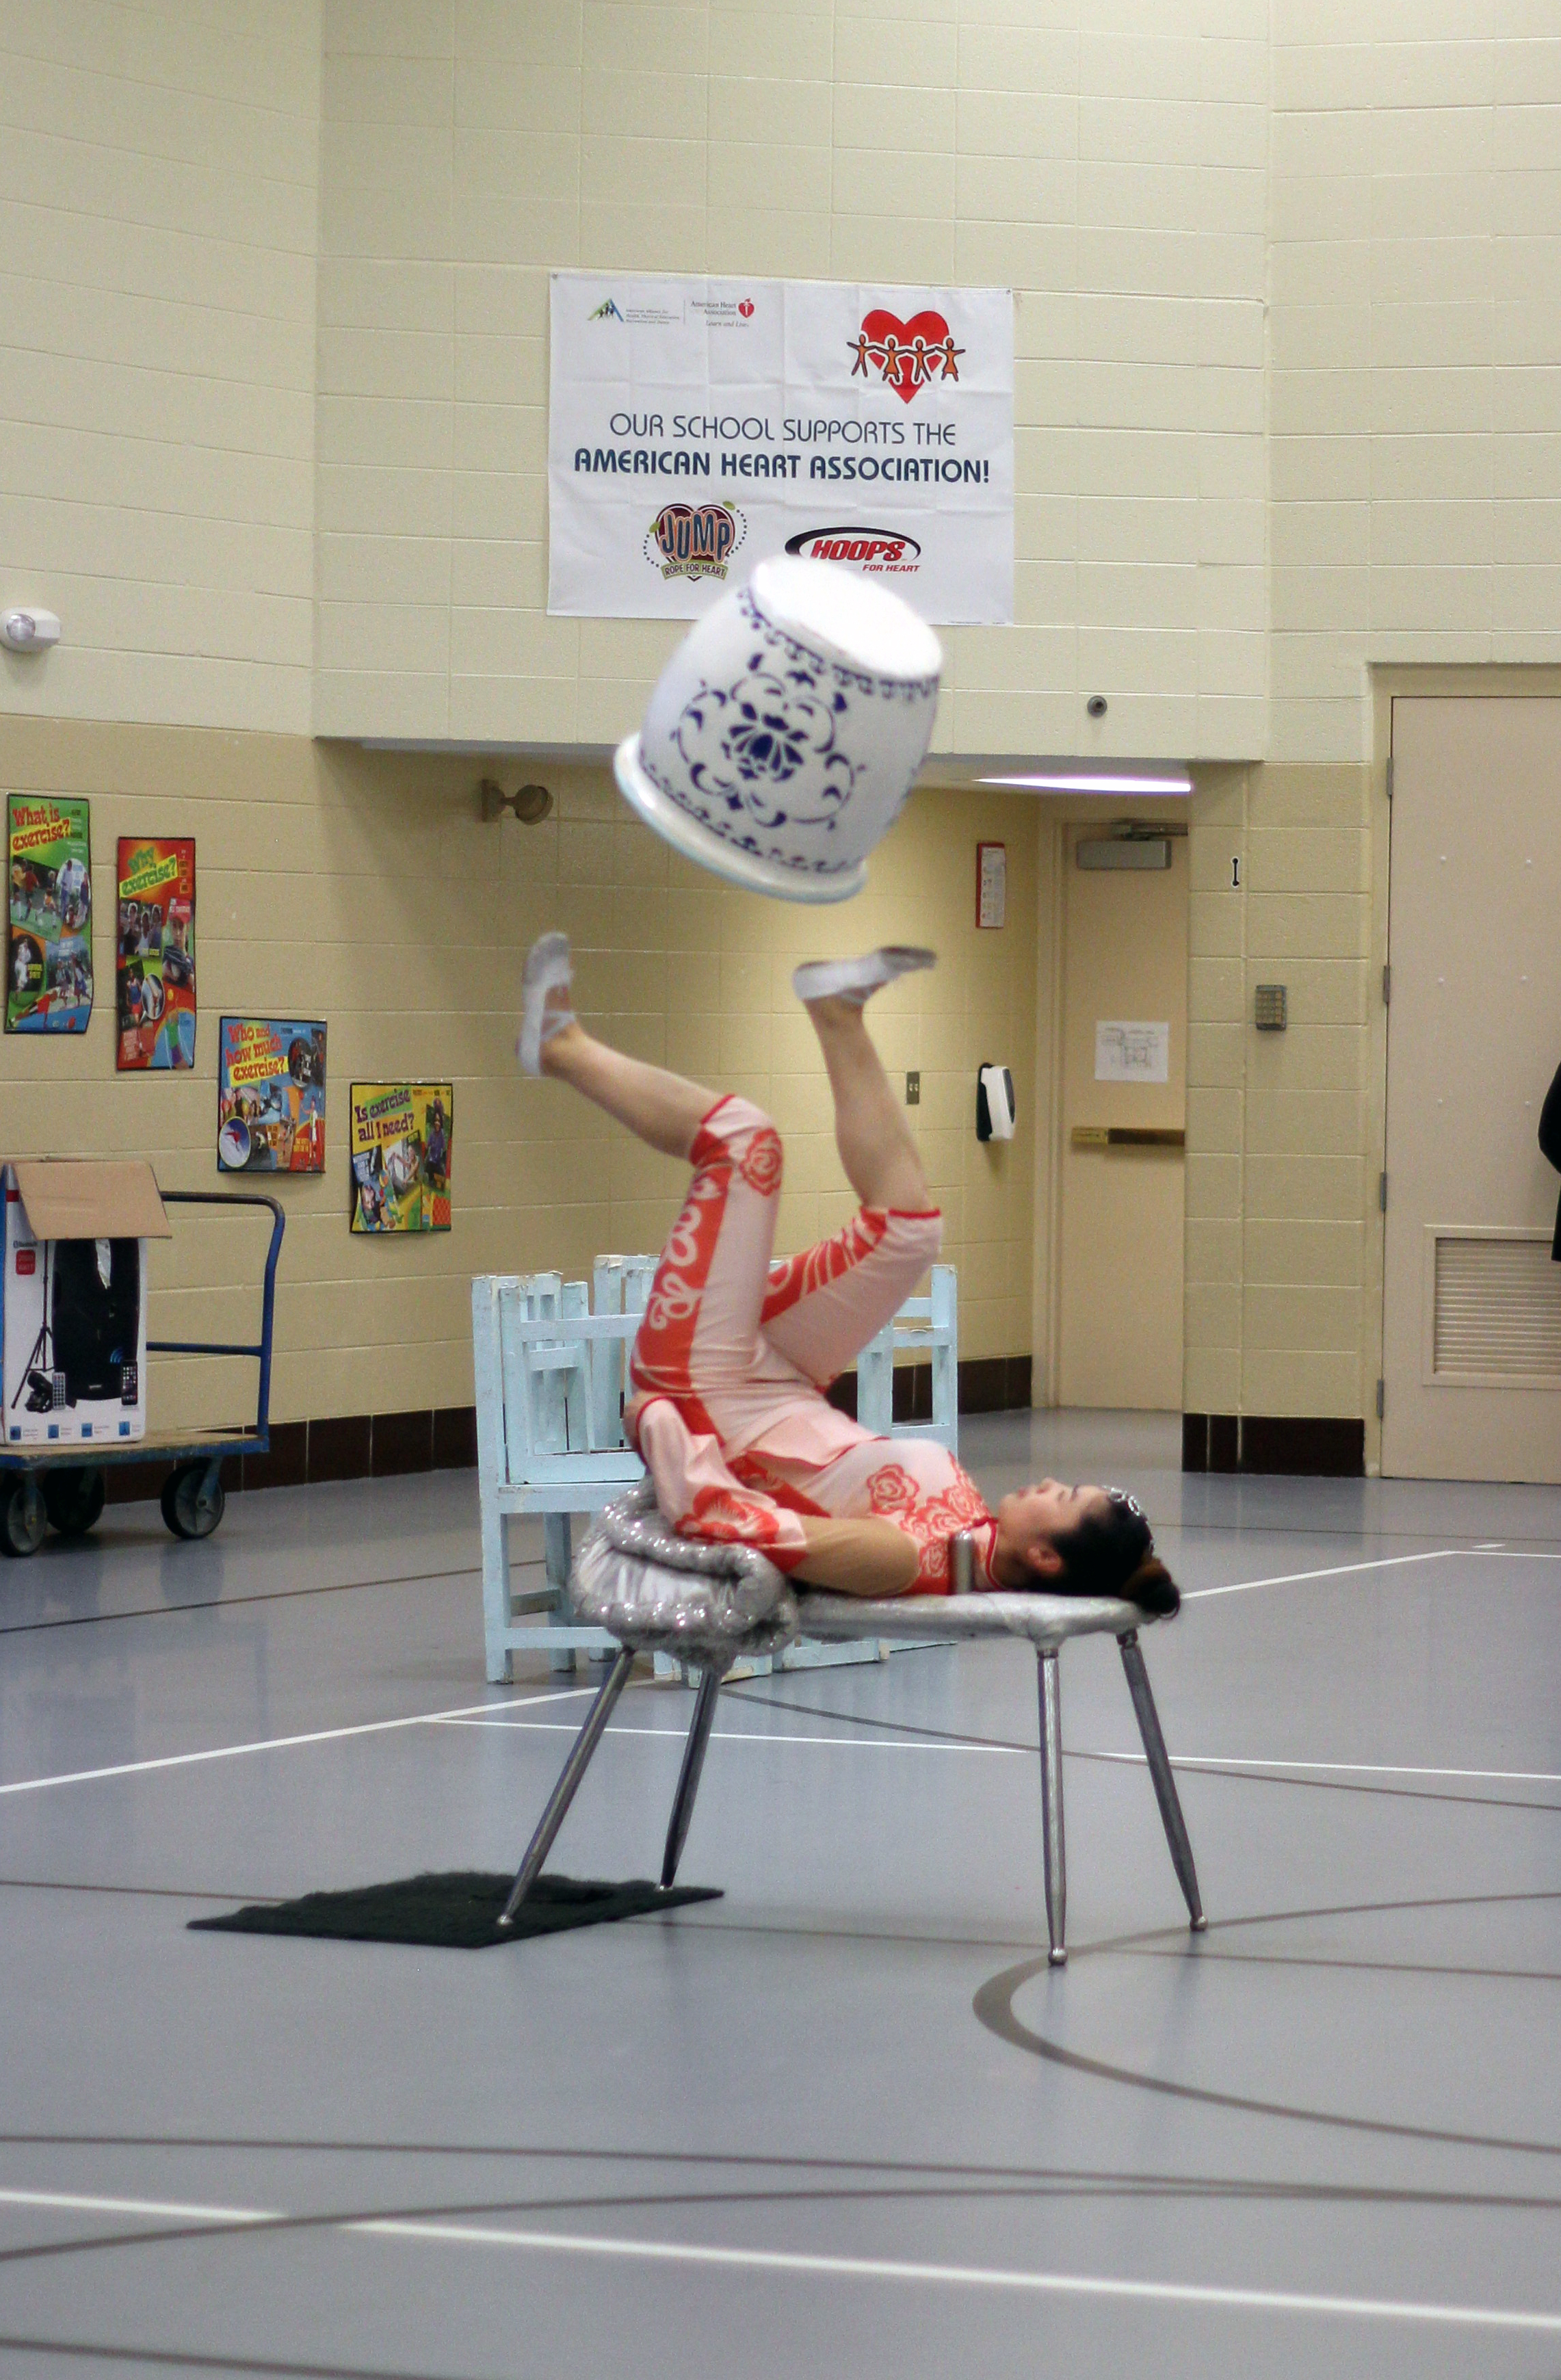 The acrobat flips the pot with her feet.